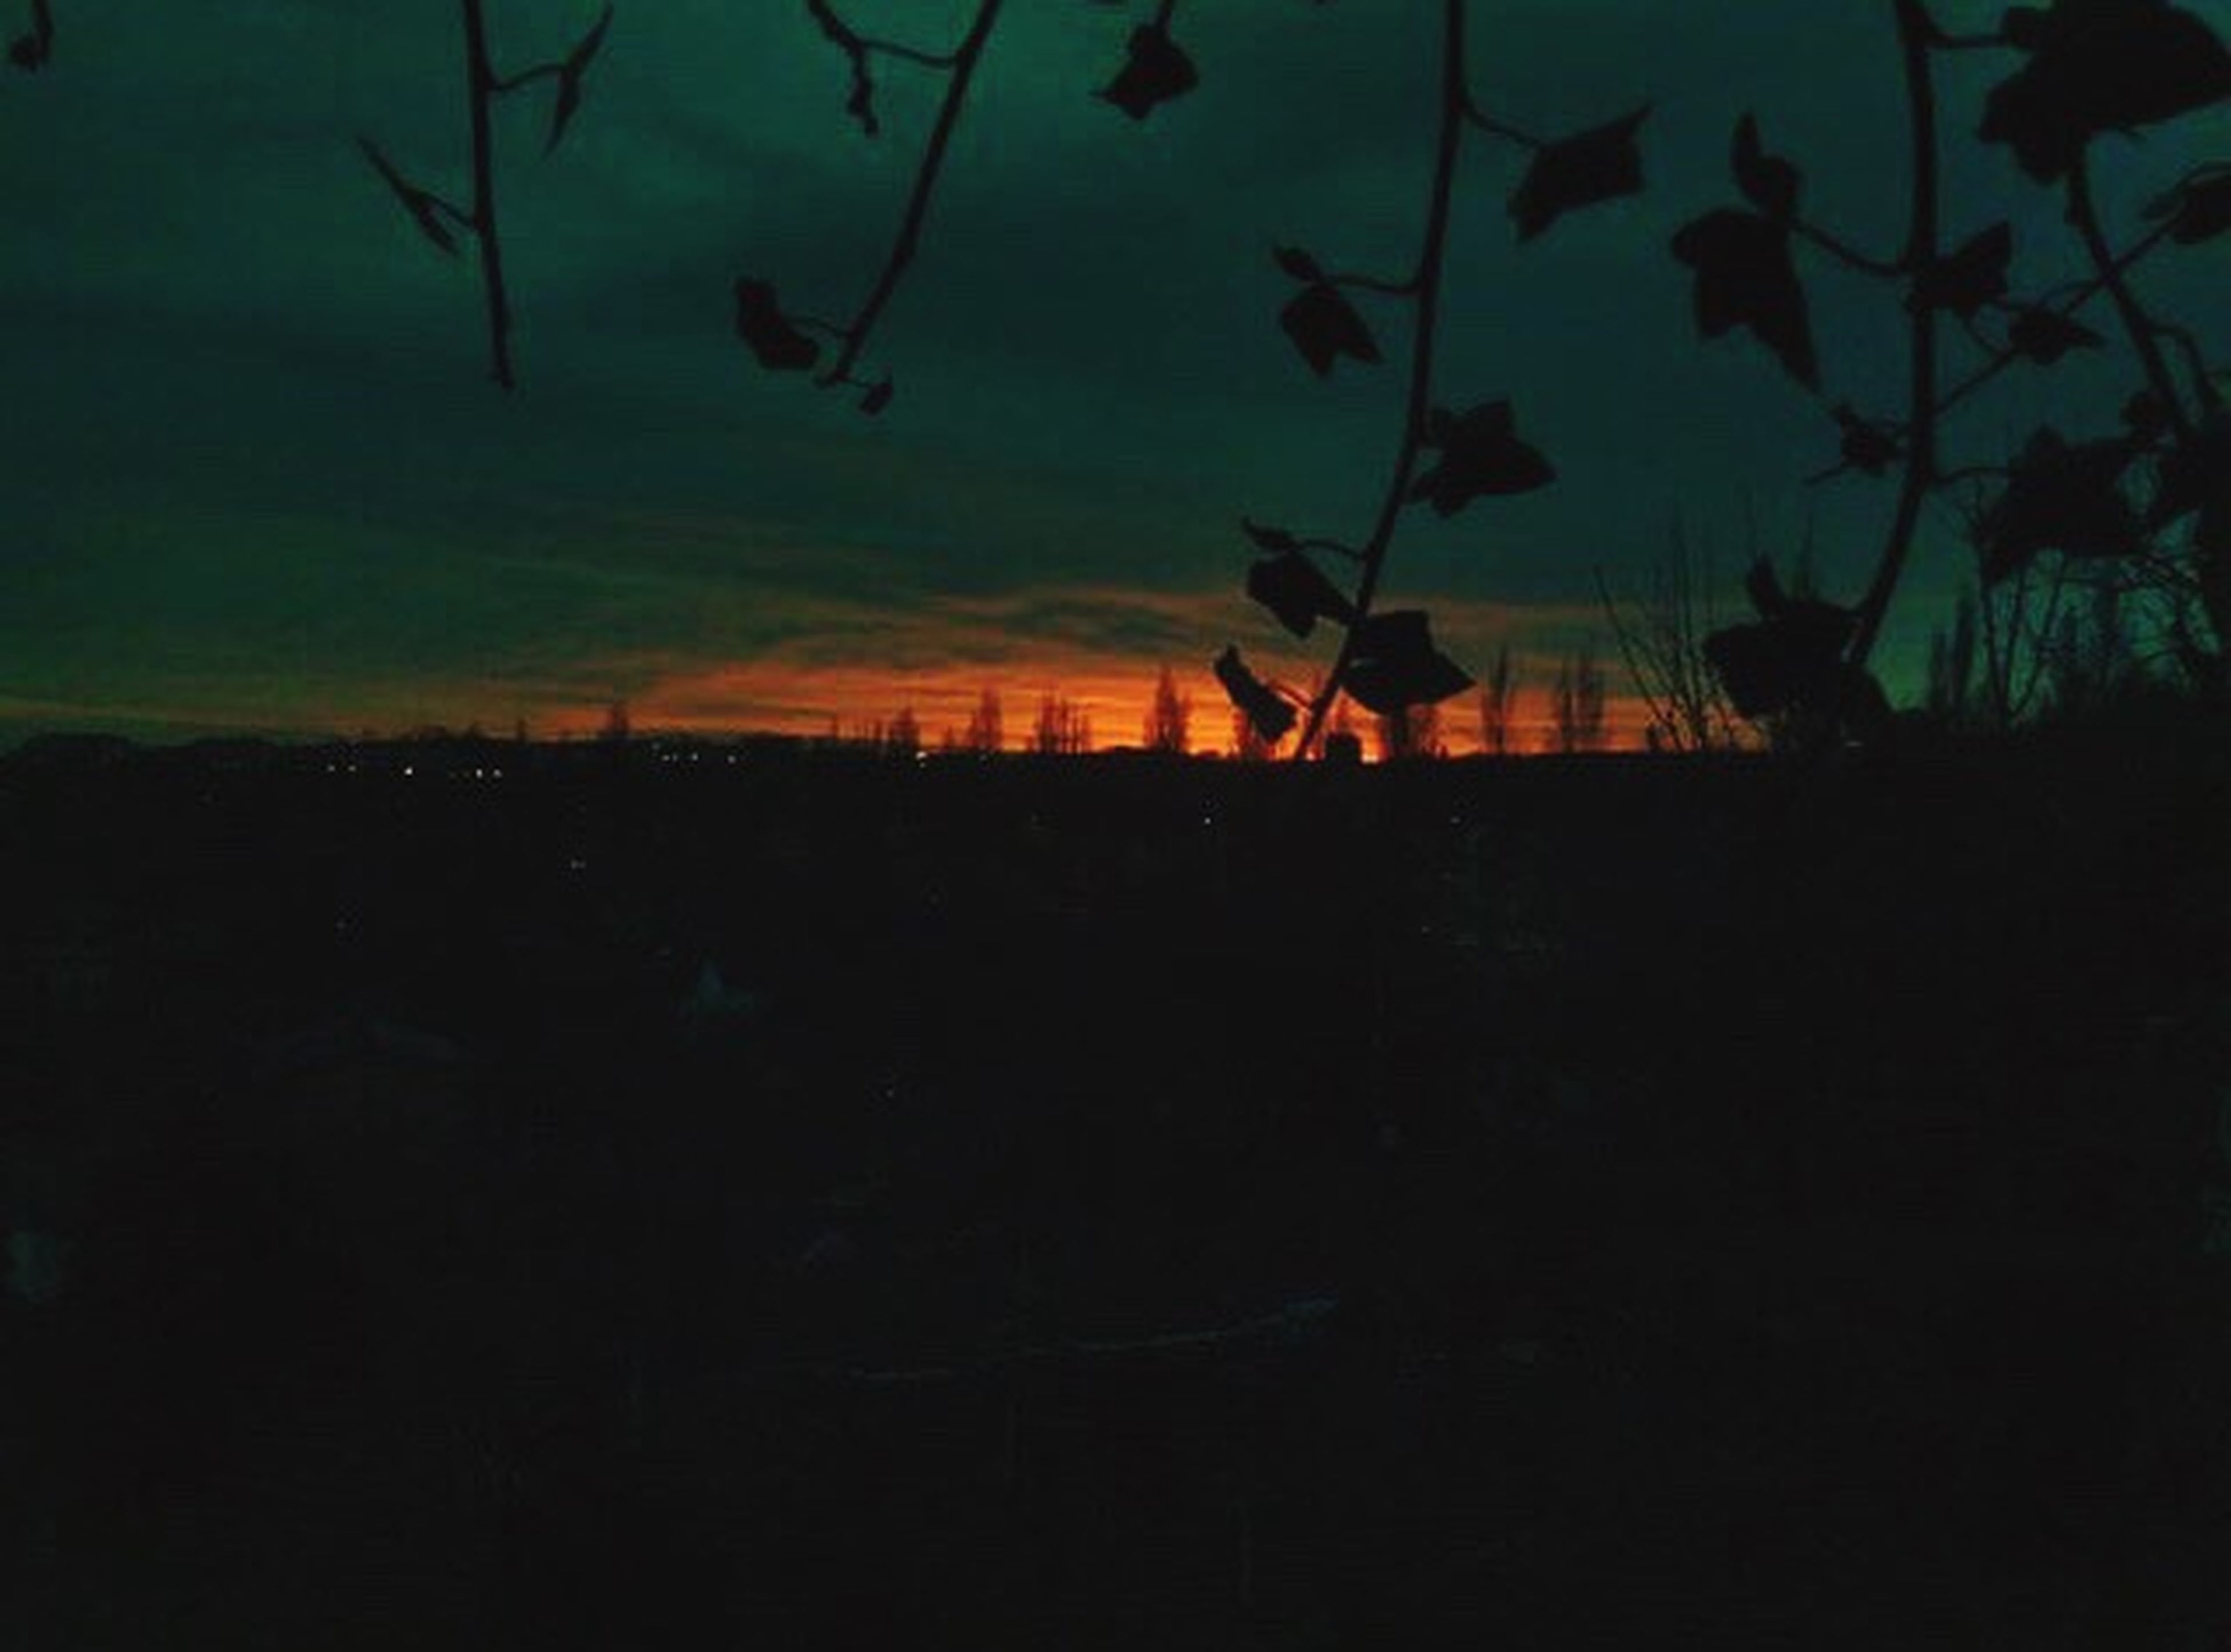 sunset, silhouette, nature, tree, outdoors, beauty in nature, scenics, sky, landscape, no people, night